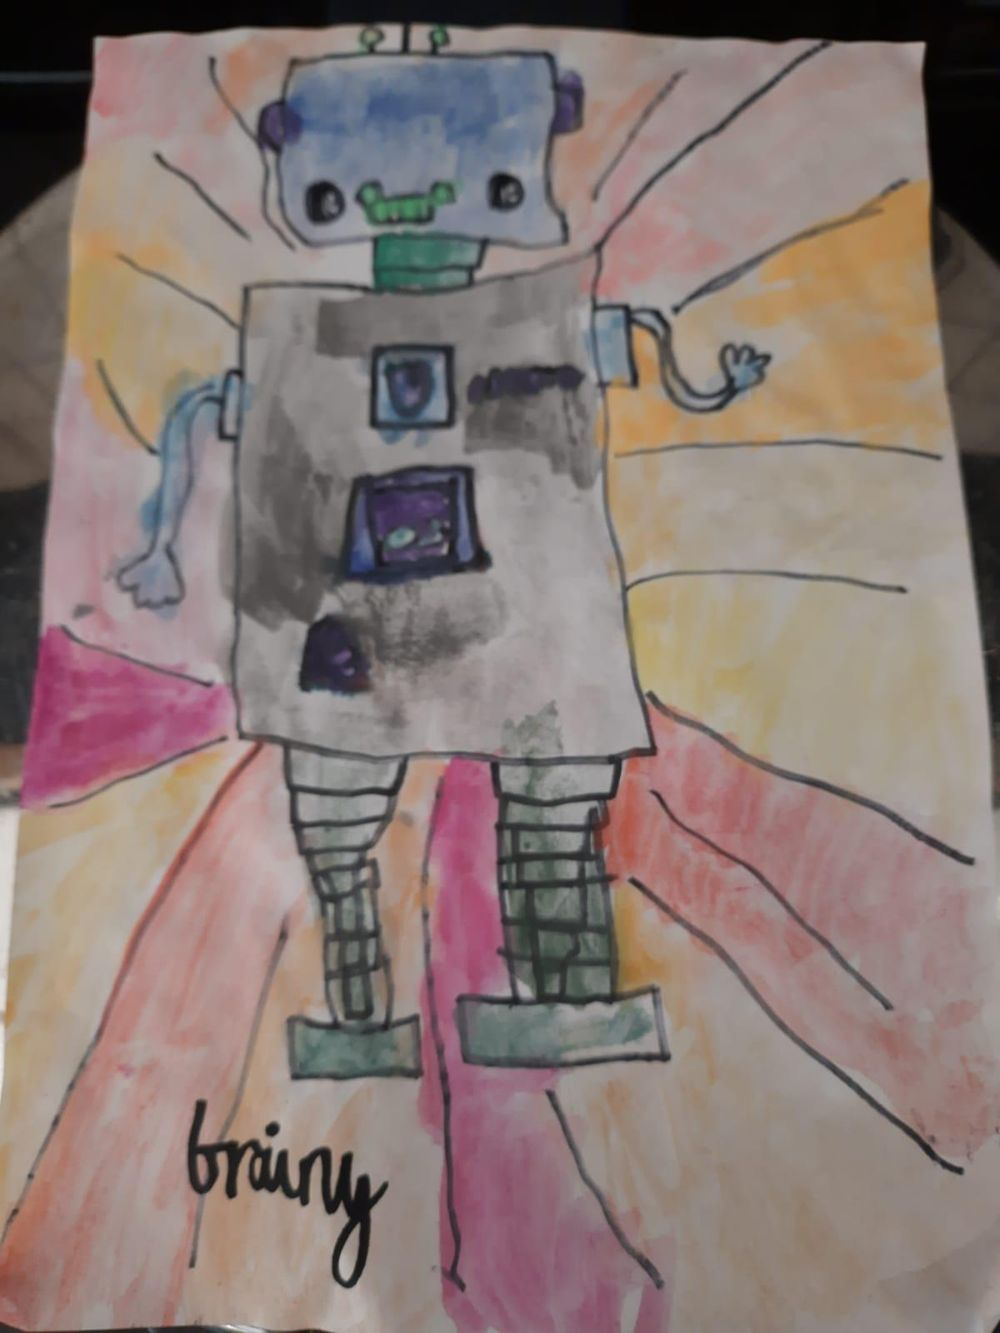 Disco robots - image 3 - student project